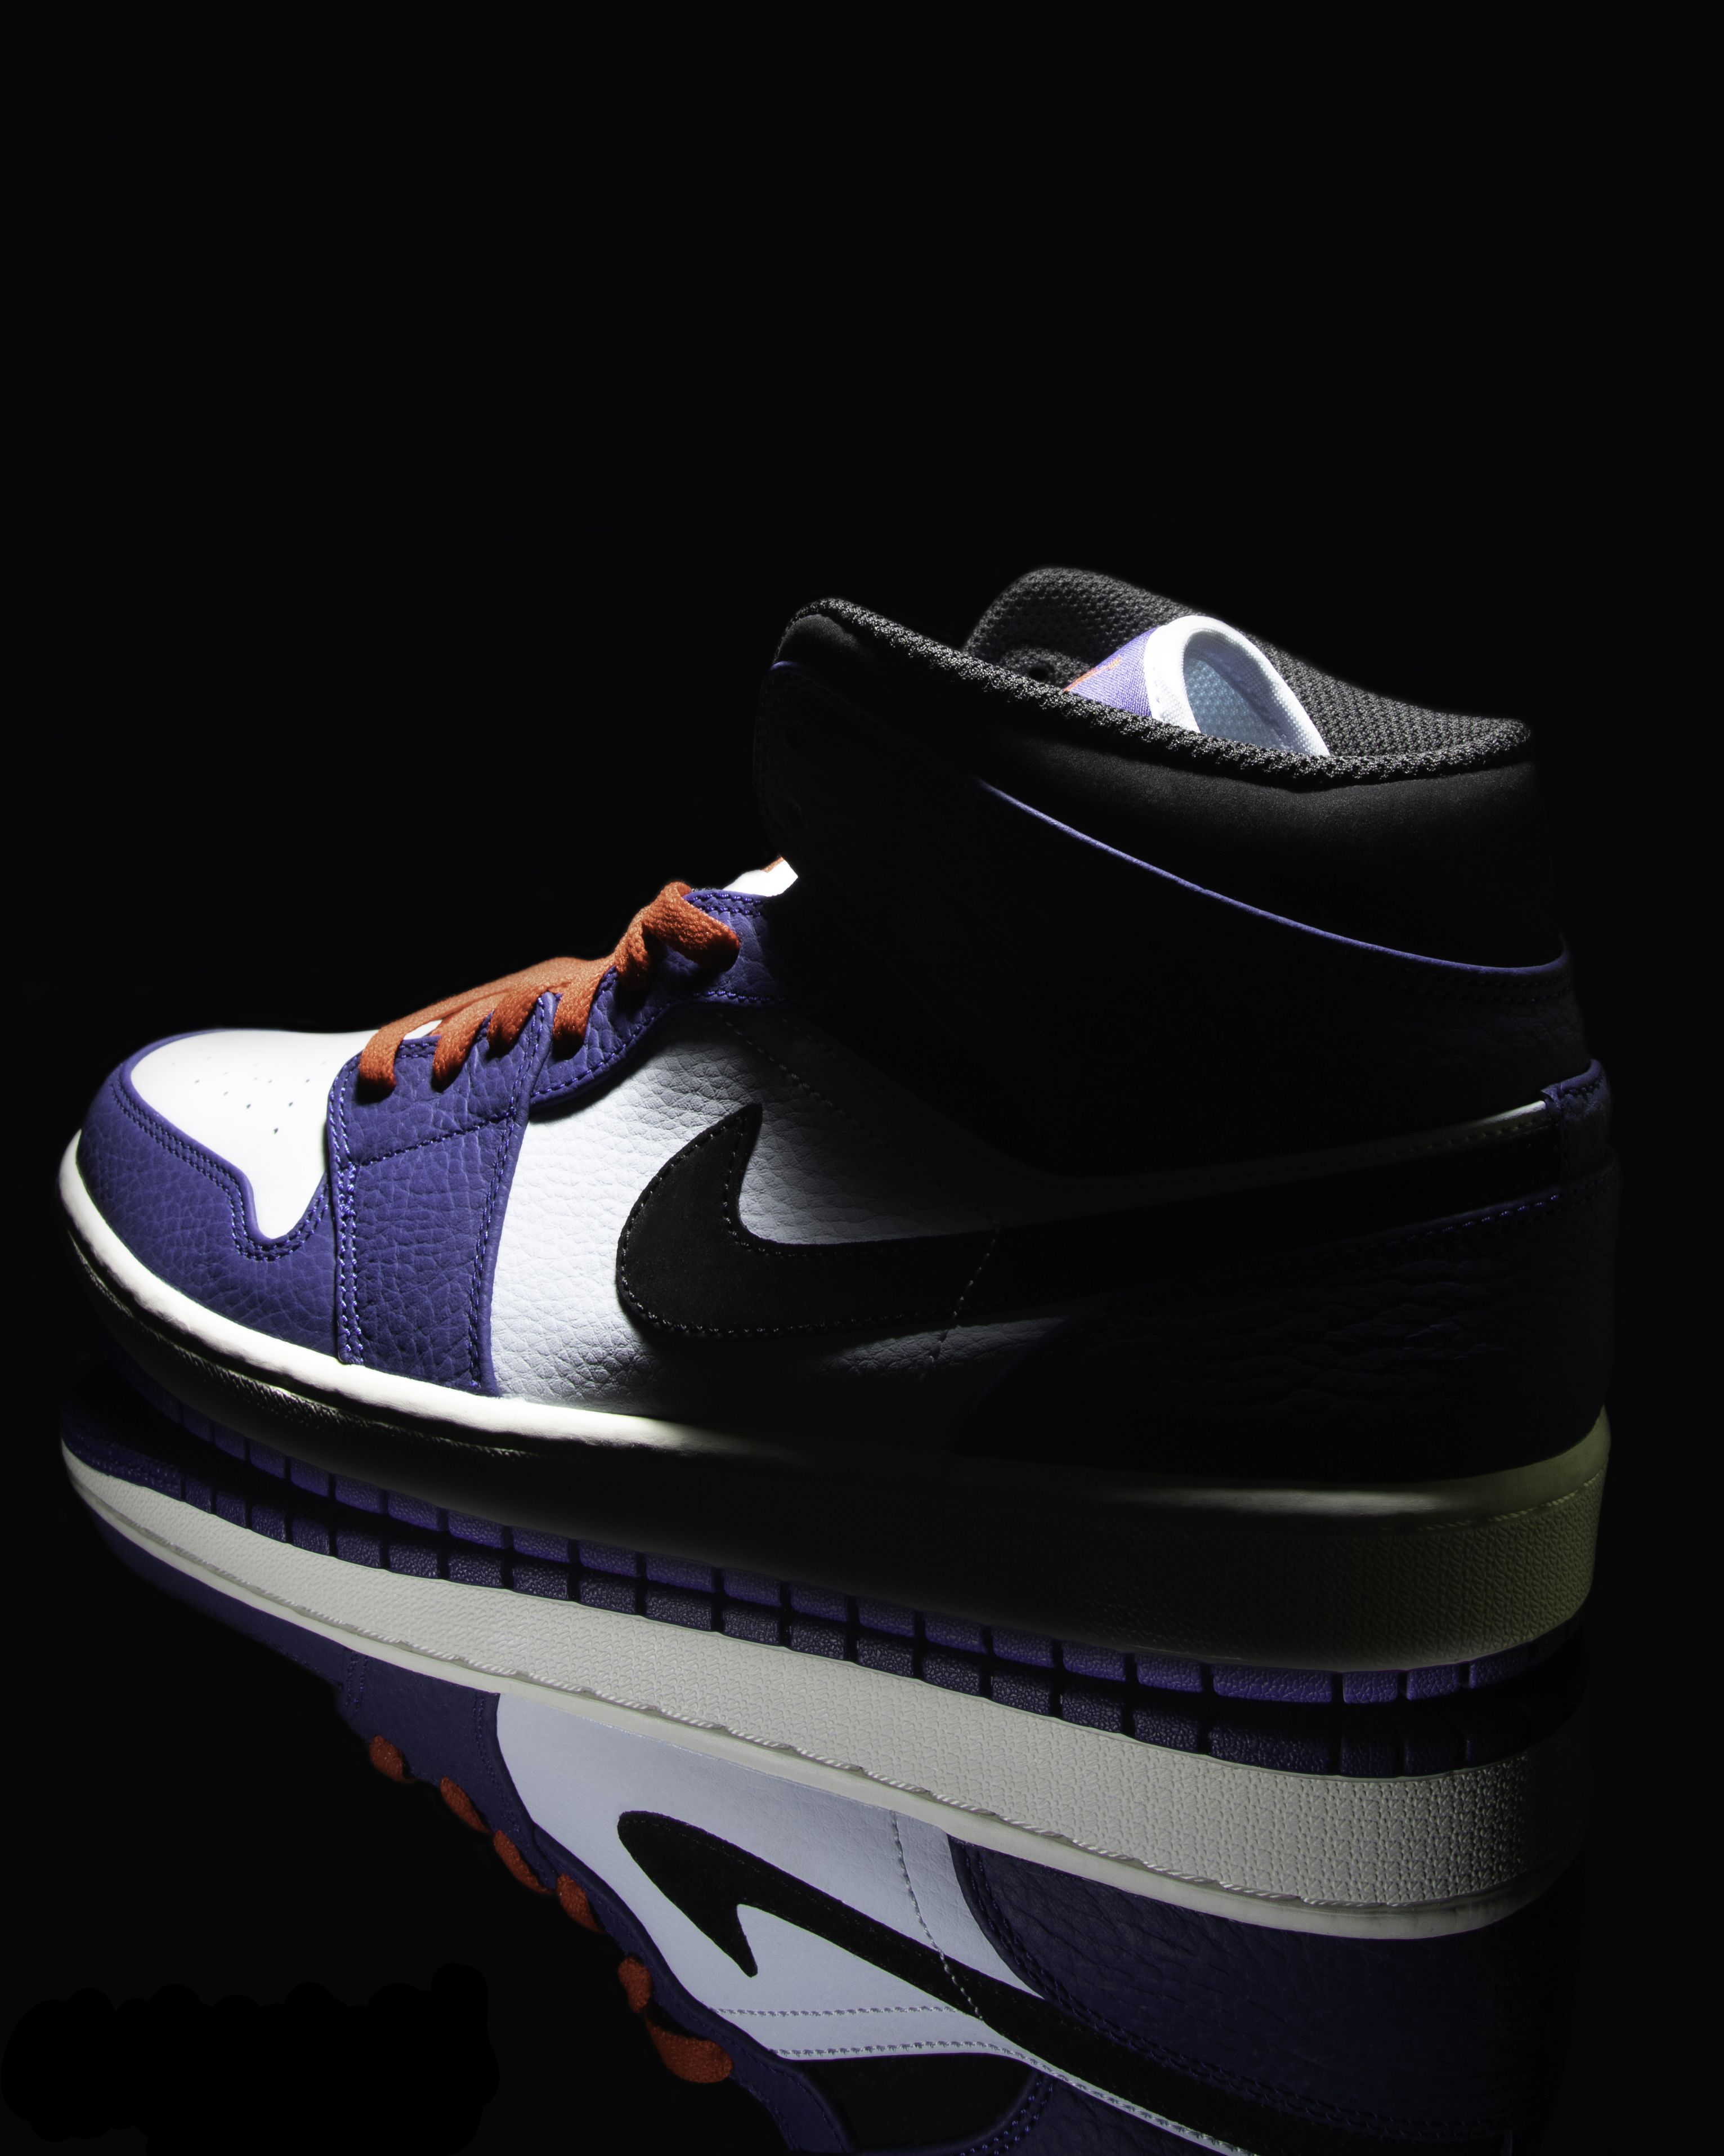 Another Nike Air Jordan 1 with a dark mood and perfect